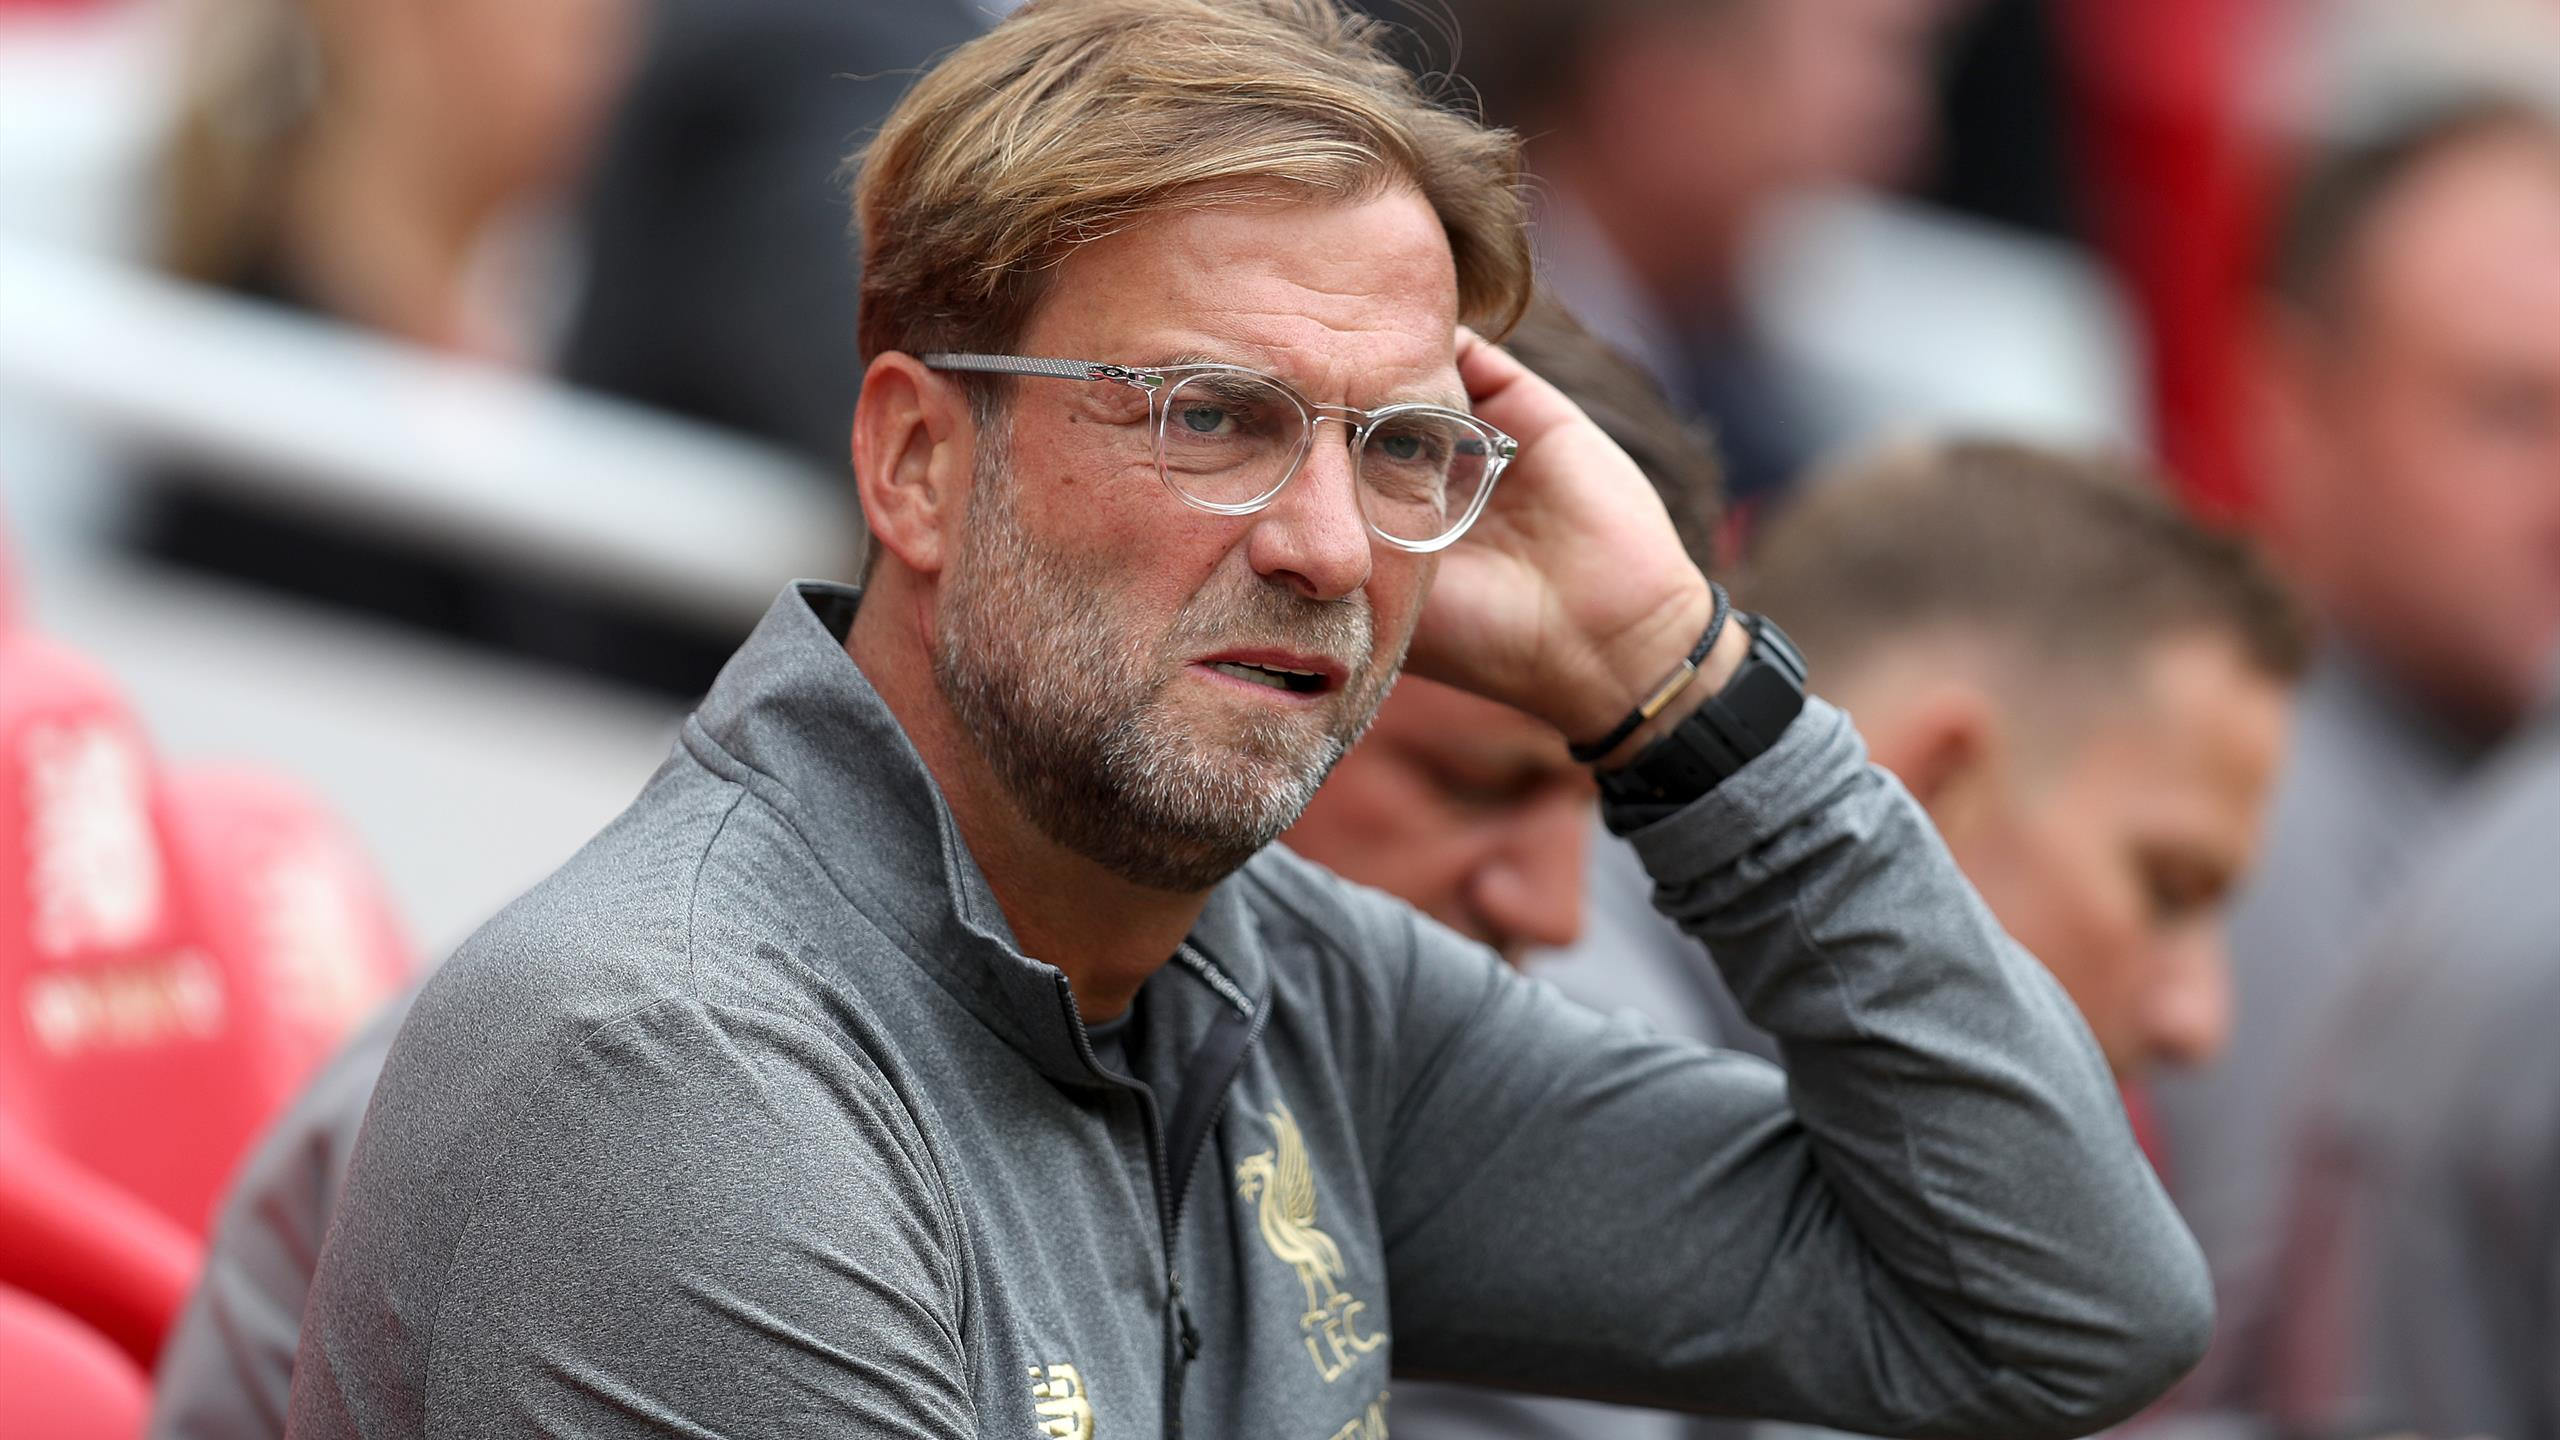 Liverpool manager Jurgen Klopp admits tougher tests await his side after an opening 4-0 win.